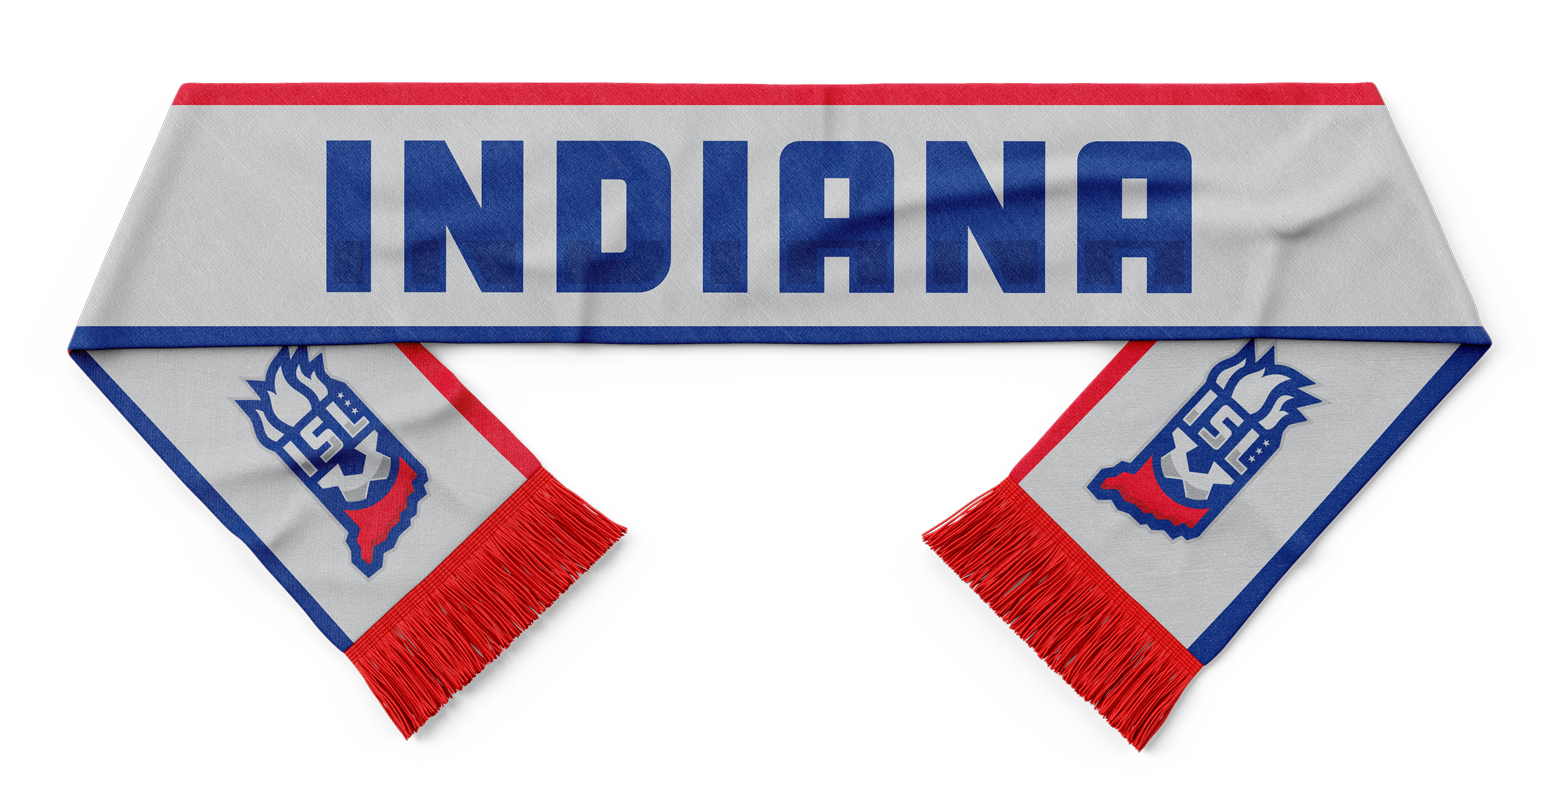 Indiana Soccer League Team Scarf Mockup